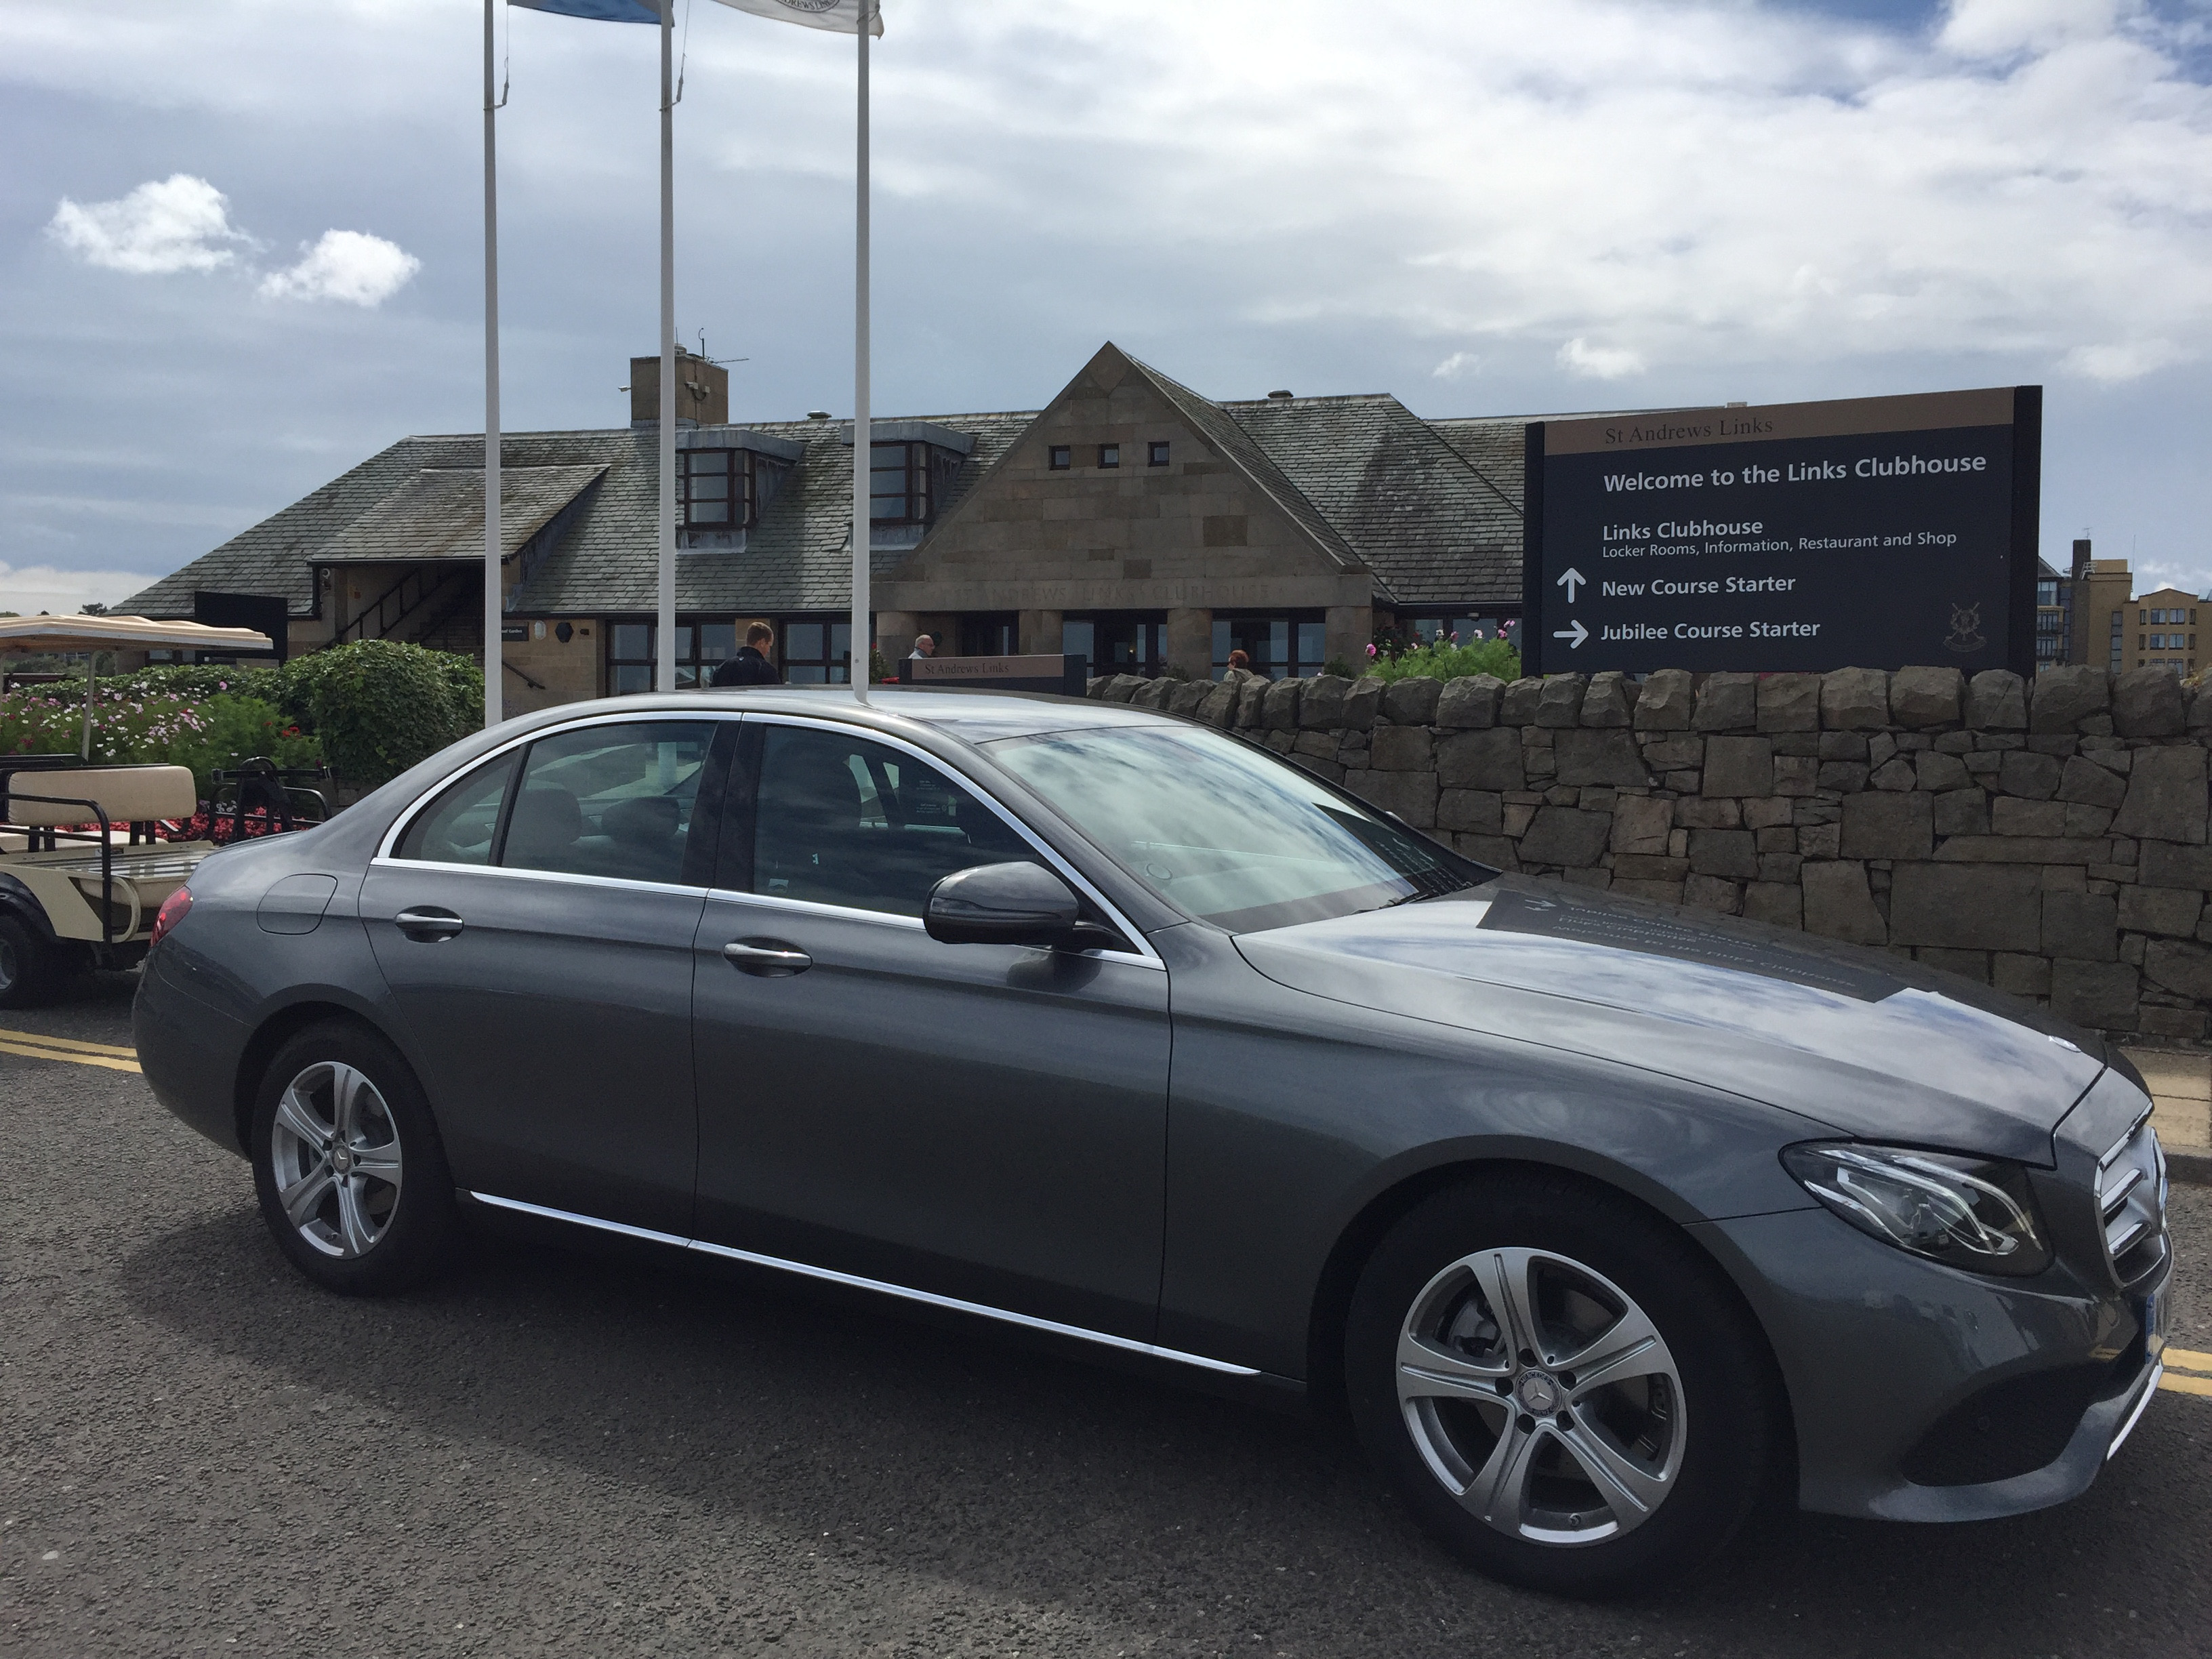 Mercedes E Class St. Andrews New Couse Golf Clubhouse